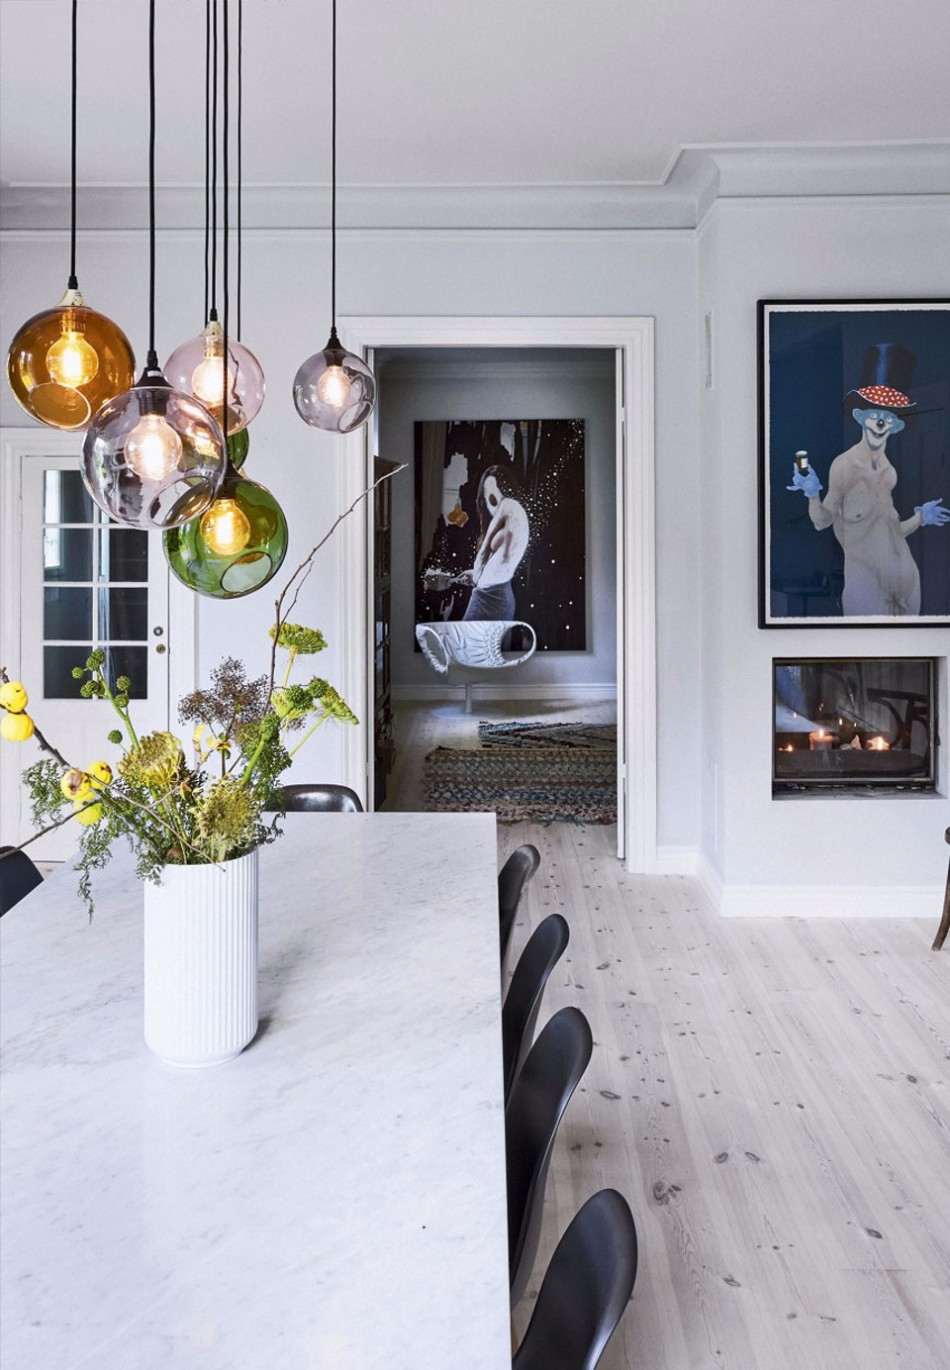 The Best Ideas To Decorate Your Dining Table | www.bocadolobo.com #diningtable #diningroom #thediningroom #diningarea #diningchairs #moderndiningchairs #interiordesign #tabledecor #decoration #roomdesign #interiordesigners @moderndiningtables